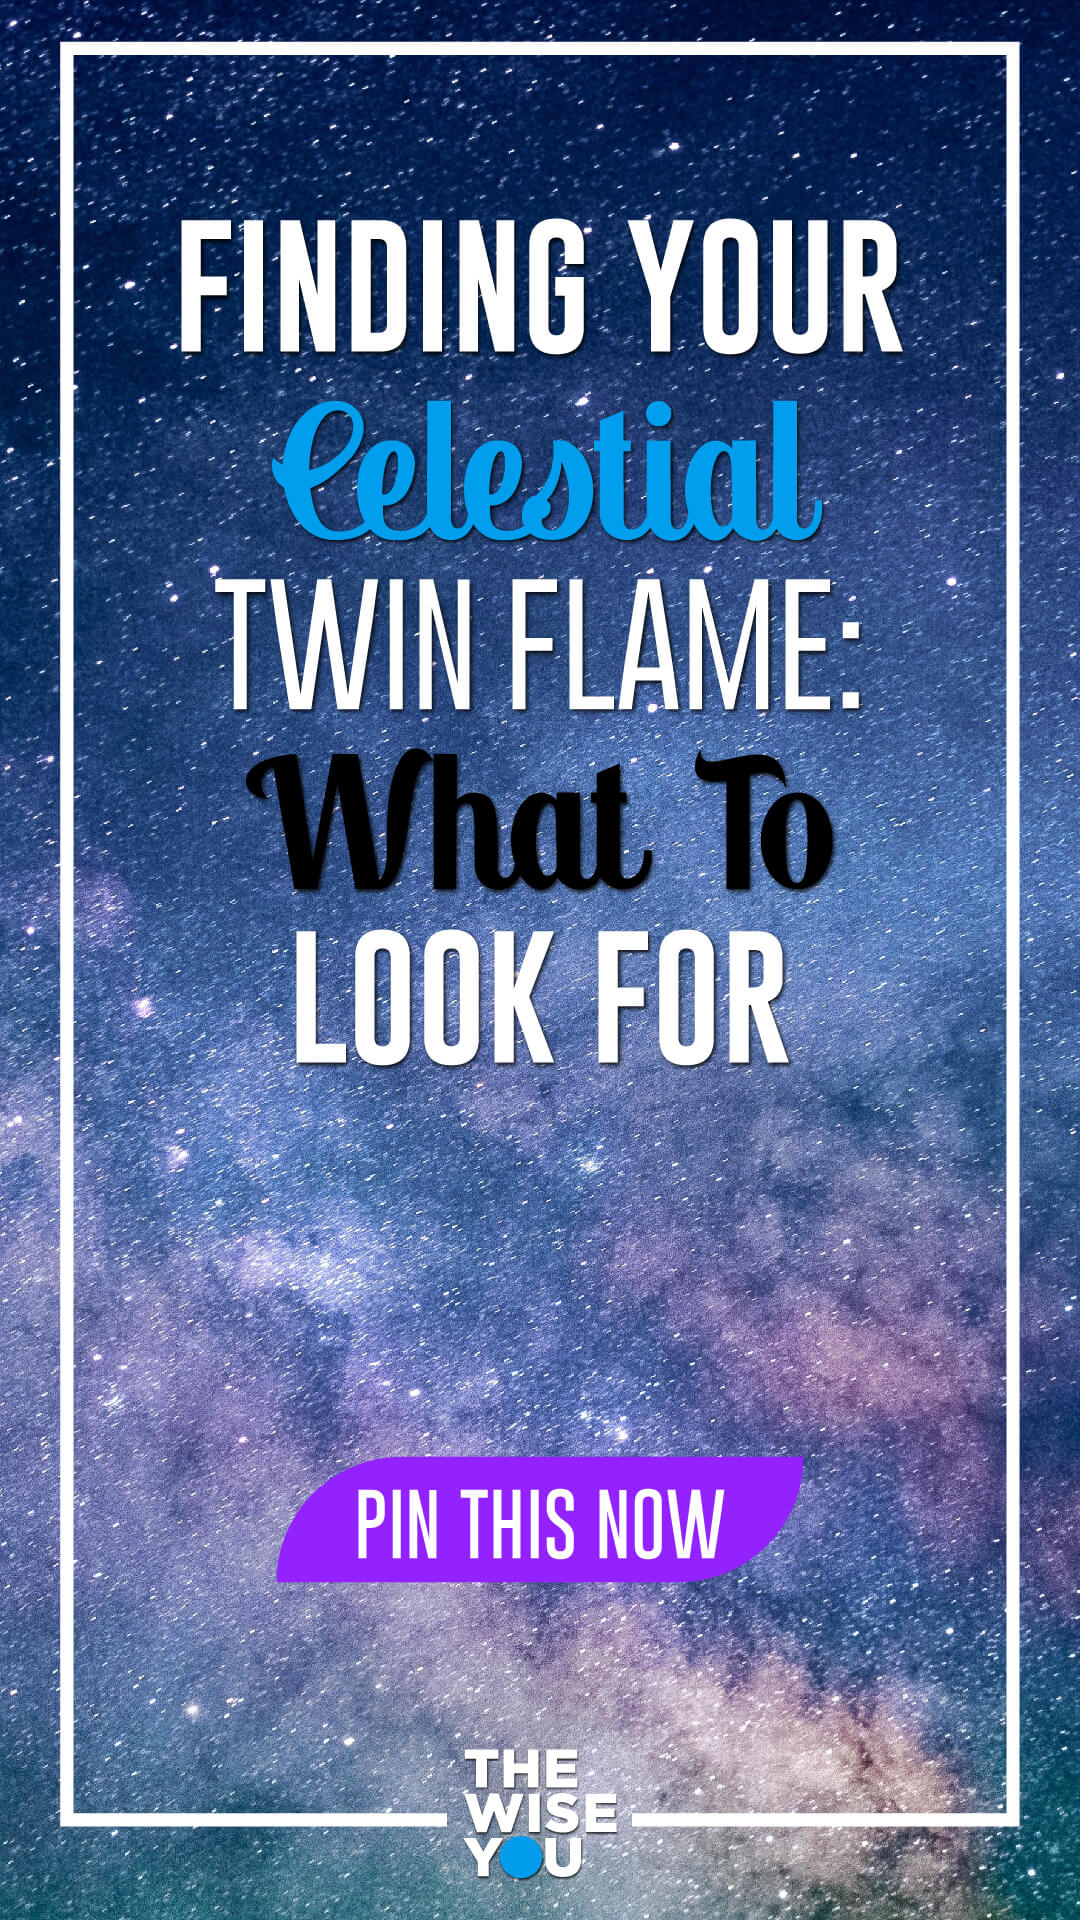 Finding Your Celestial Twin Flame: What To Look For